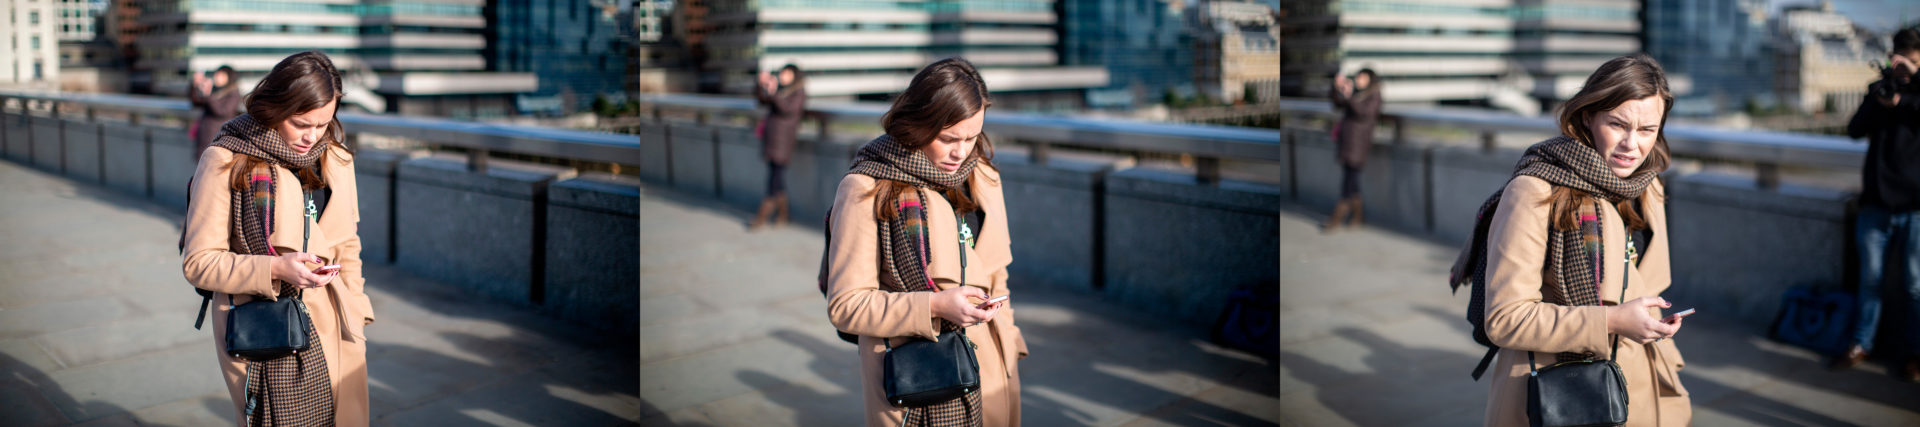 The relationship between the photographer and subject quickly change in this series of a passing woman on London Bridge.